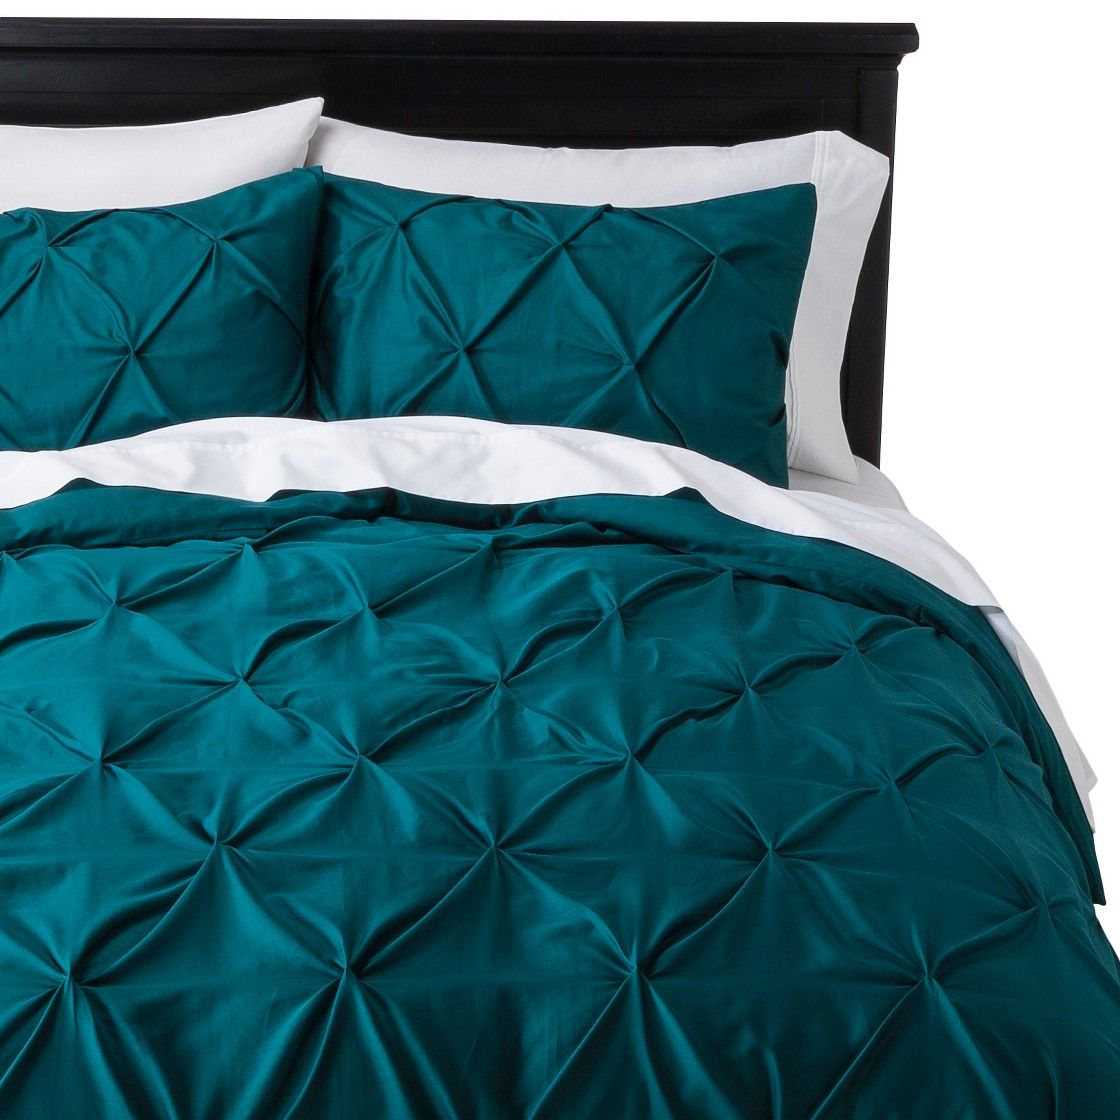 Novel Bettwäsche Seersucker Teal Bed Set Target Threshold Pinched Pleat Duvet Cover Set